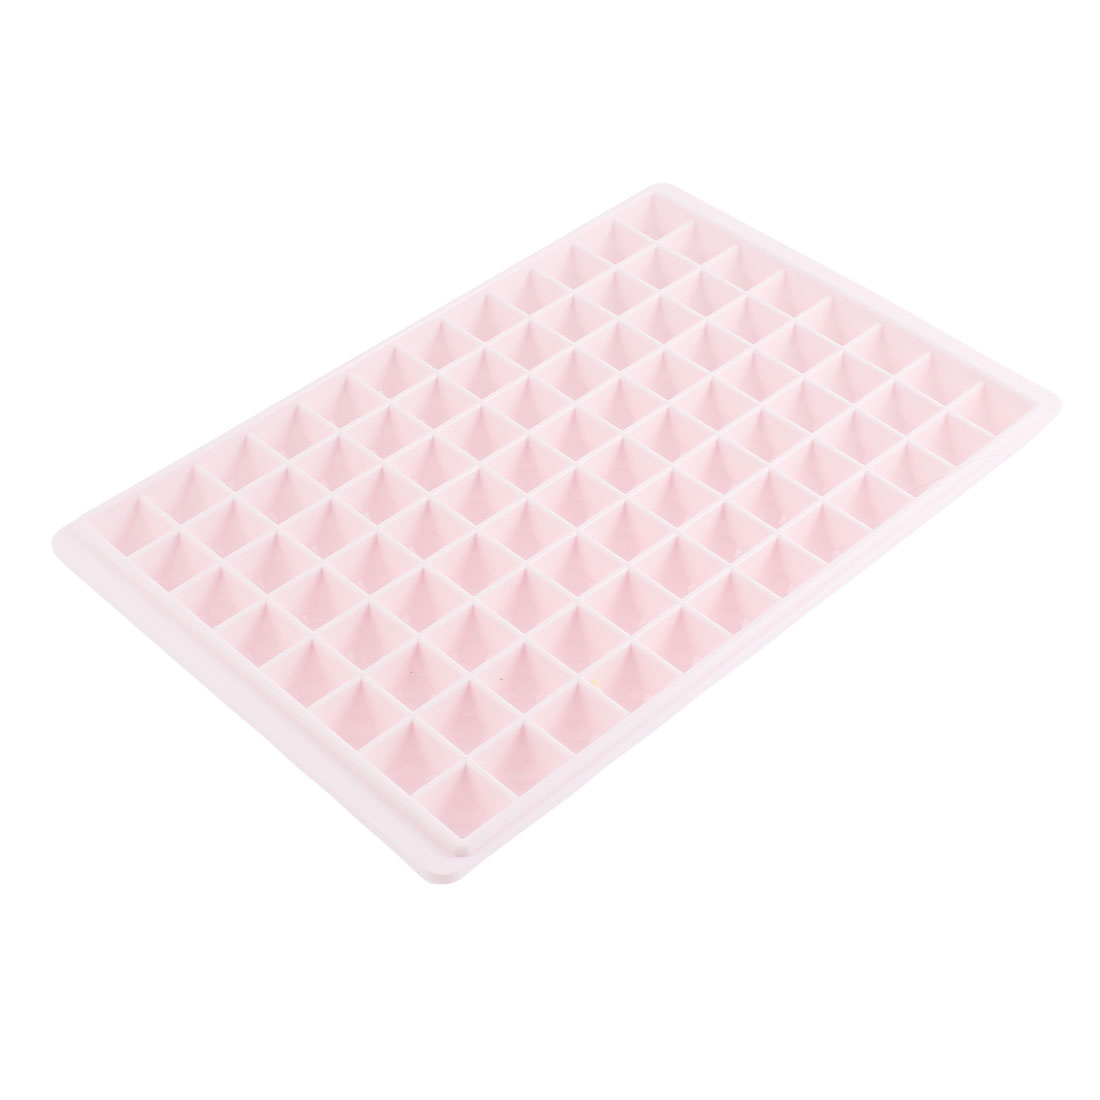 Cake Chocolate Making Square 96 Slots Ice Cube Mold Light Pink